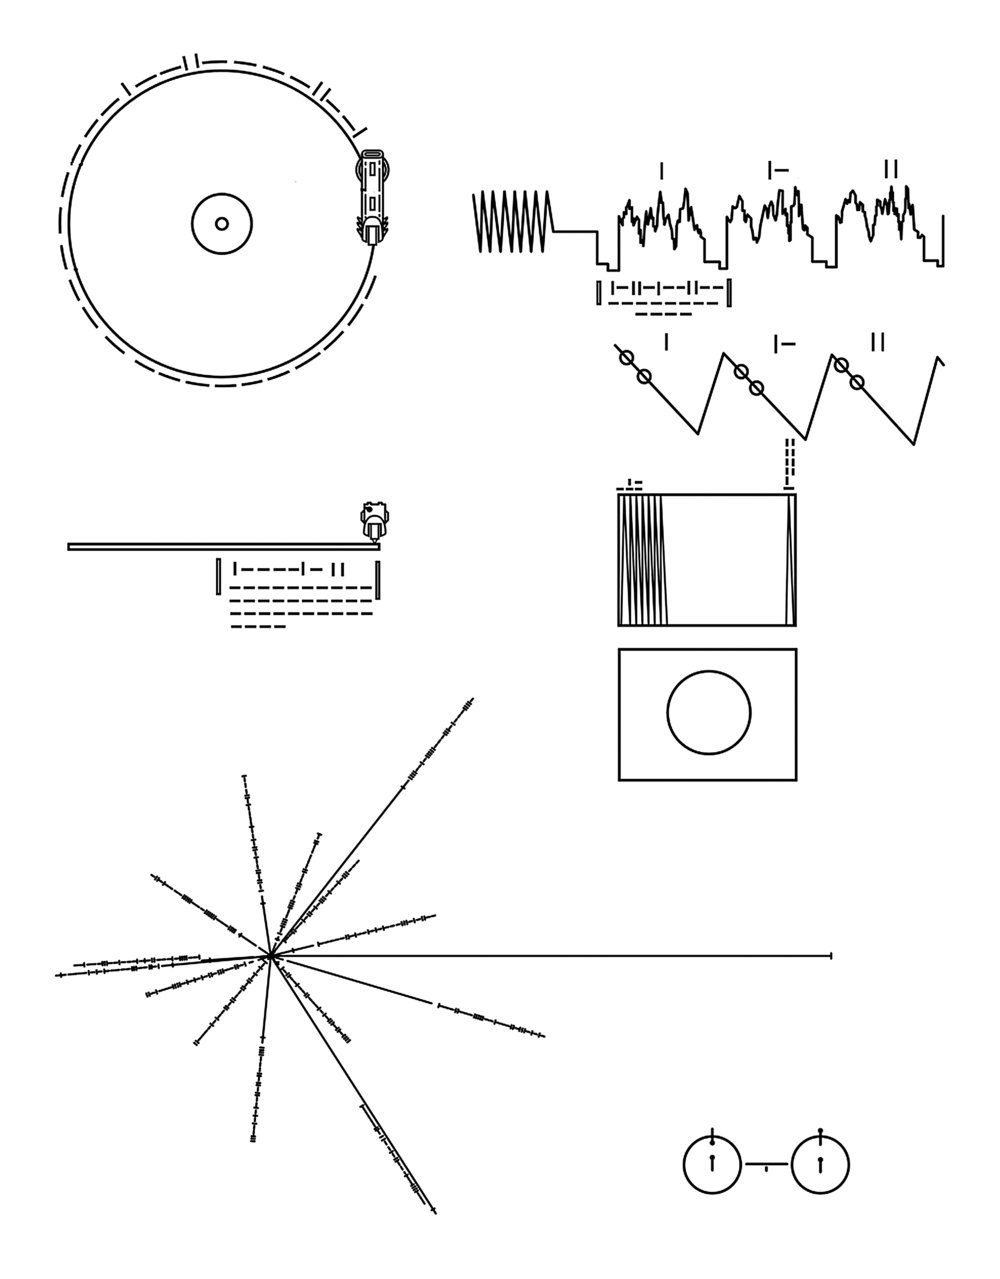 Fig. 3: Symbols on the gold LPs for the Voyager I and II space probes, designed by NASA, 1977.